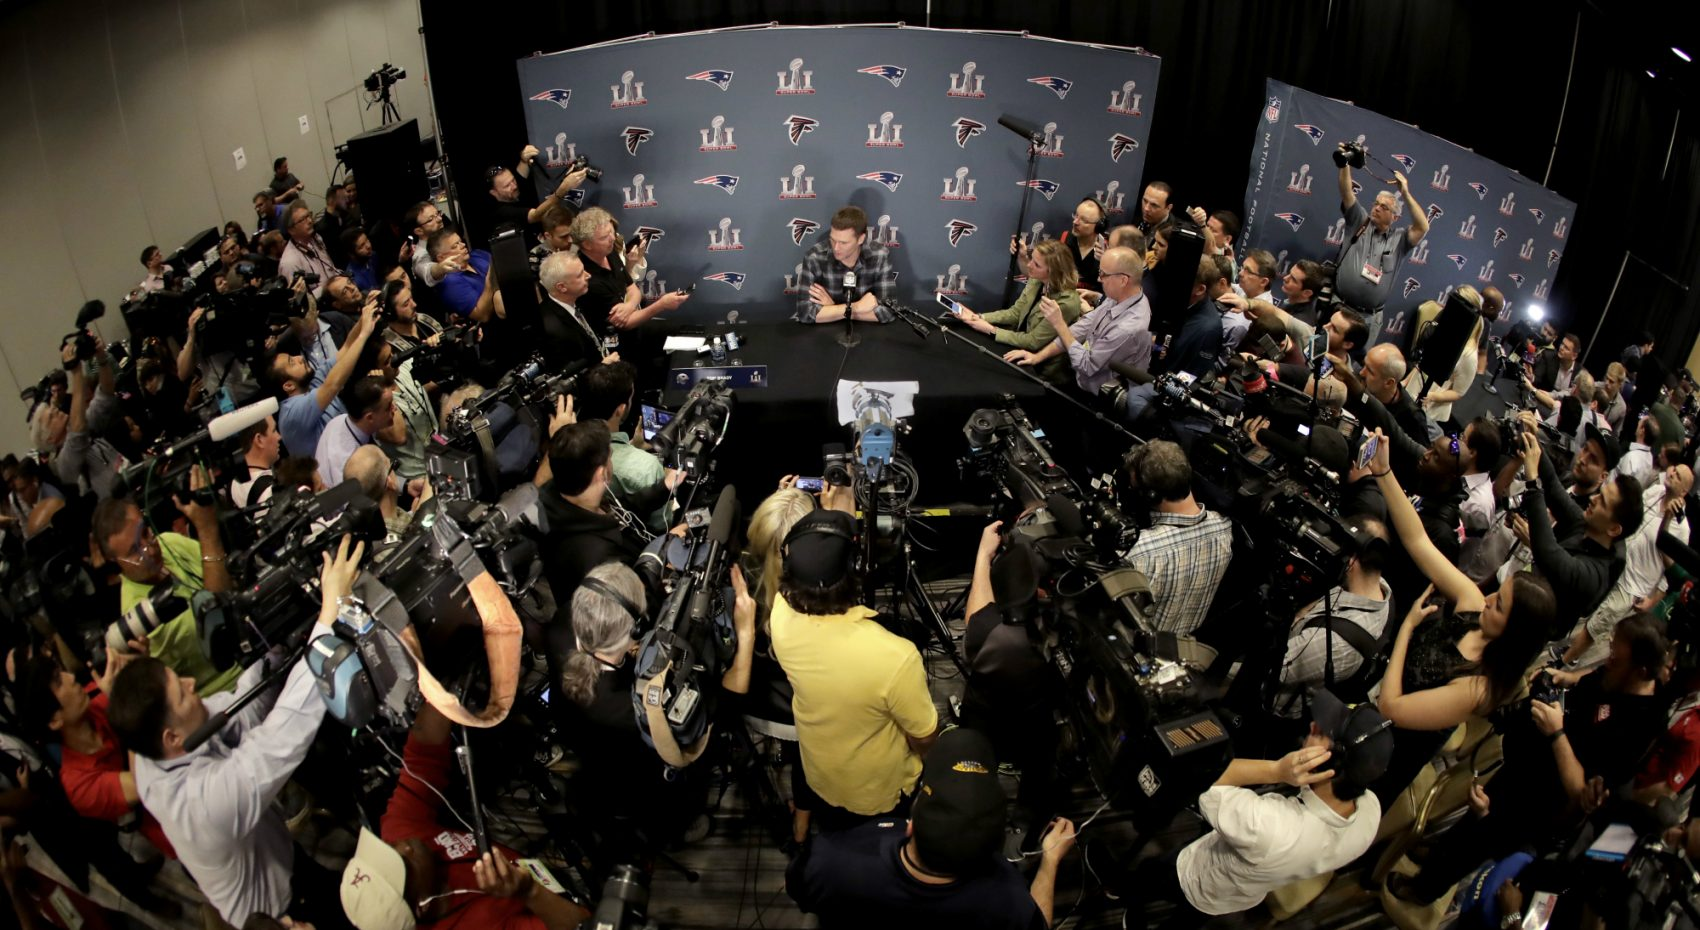 Pre-Super Bowl Houston feels like an alternate reality, writes Shira Springer. It's a land in which Tom Brady's brand of blinders-on positivity can thrive, and the NFL brand can shine. Pictured: New England Patriots quarterback Tom Brady talks to the media during a news conference for the NFL Super Bowl 51 football game against the Atlanta Falcons. Tuesday, Jan. 31, 2017, in Houston. (Charlie Riedel/AP)